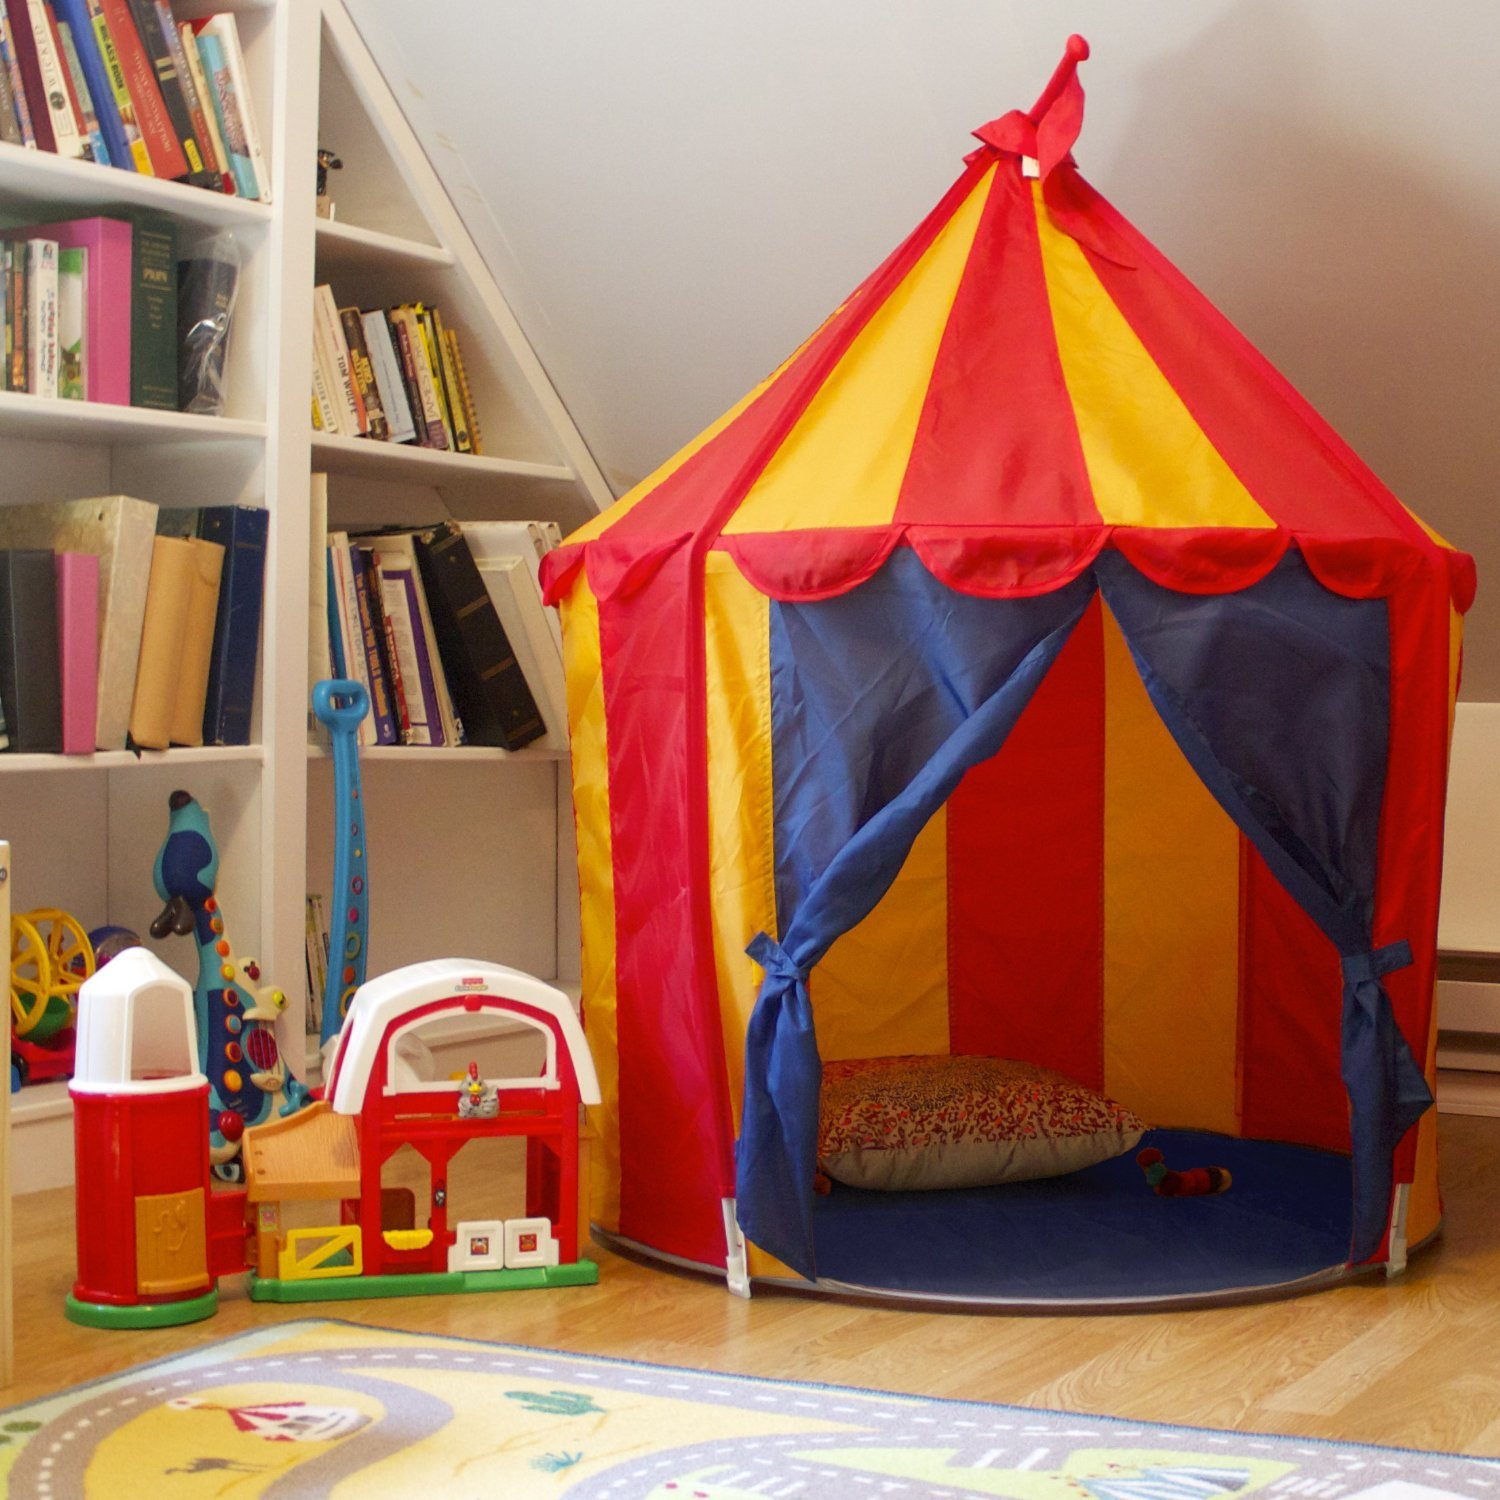 Amazon.com Childrenu0027s Indoor Play Tent -- CIRCUS TENT- Great Gift for Kids Toys u0026 Games & Amazon.com: Childrenu0027s Indoor Play Tent -- CIRCUS TENT- Great Gift ...